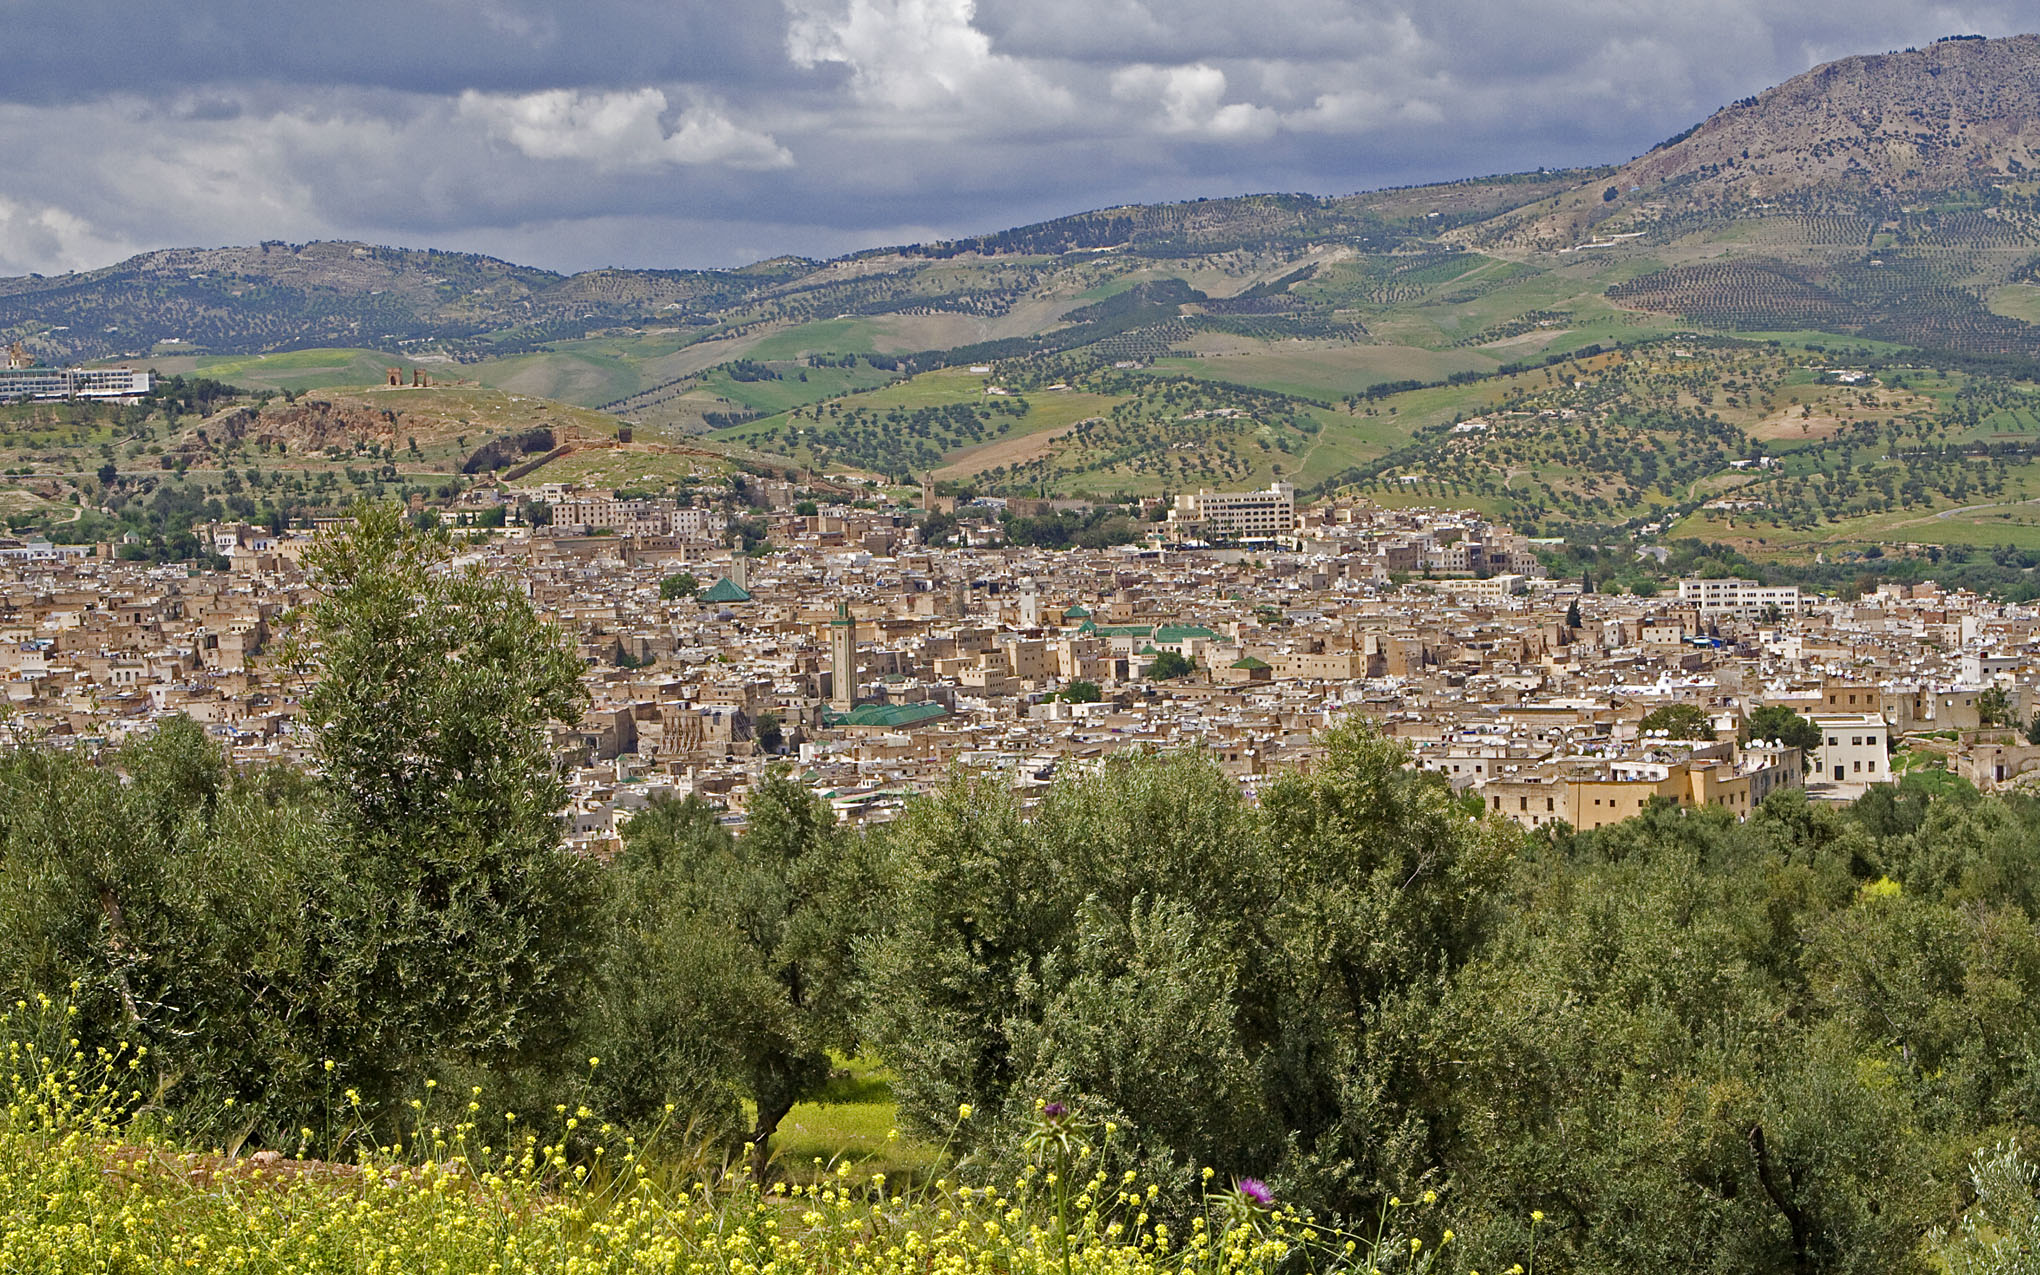 Fez Medina in Perspective - 2